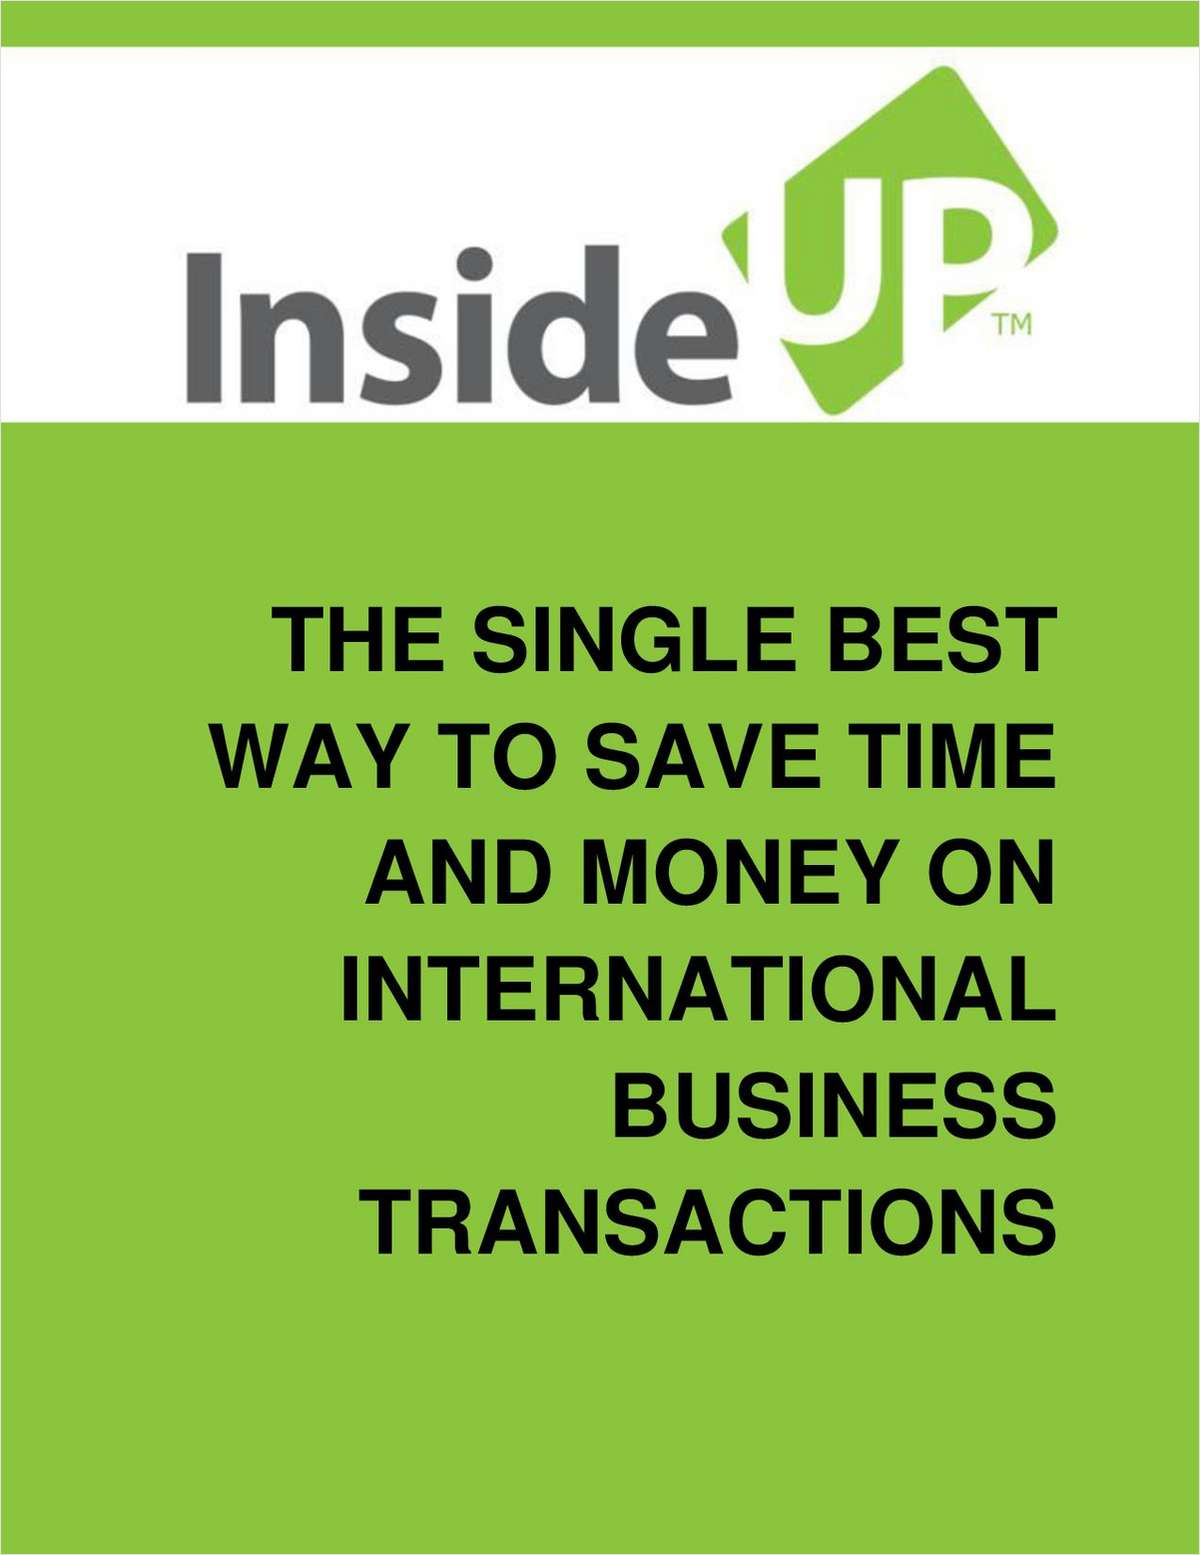 The Single Best Way to Save Time and Money on International Business Transactions